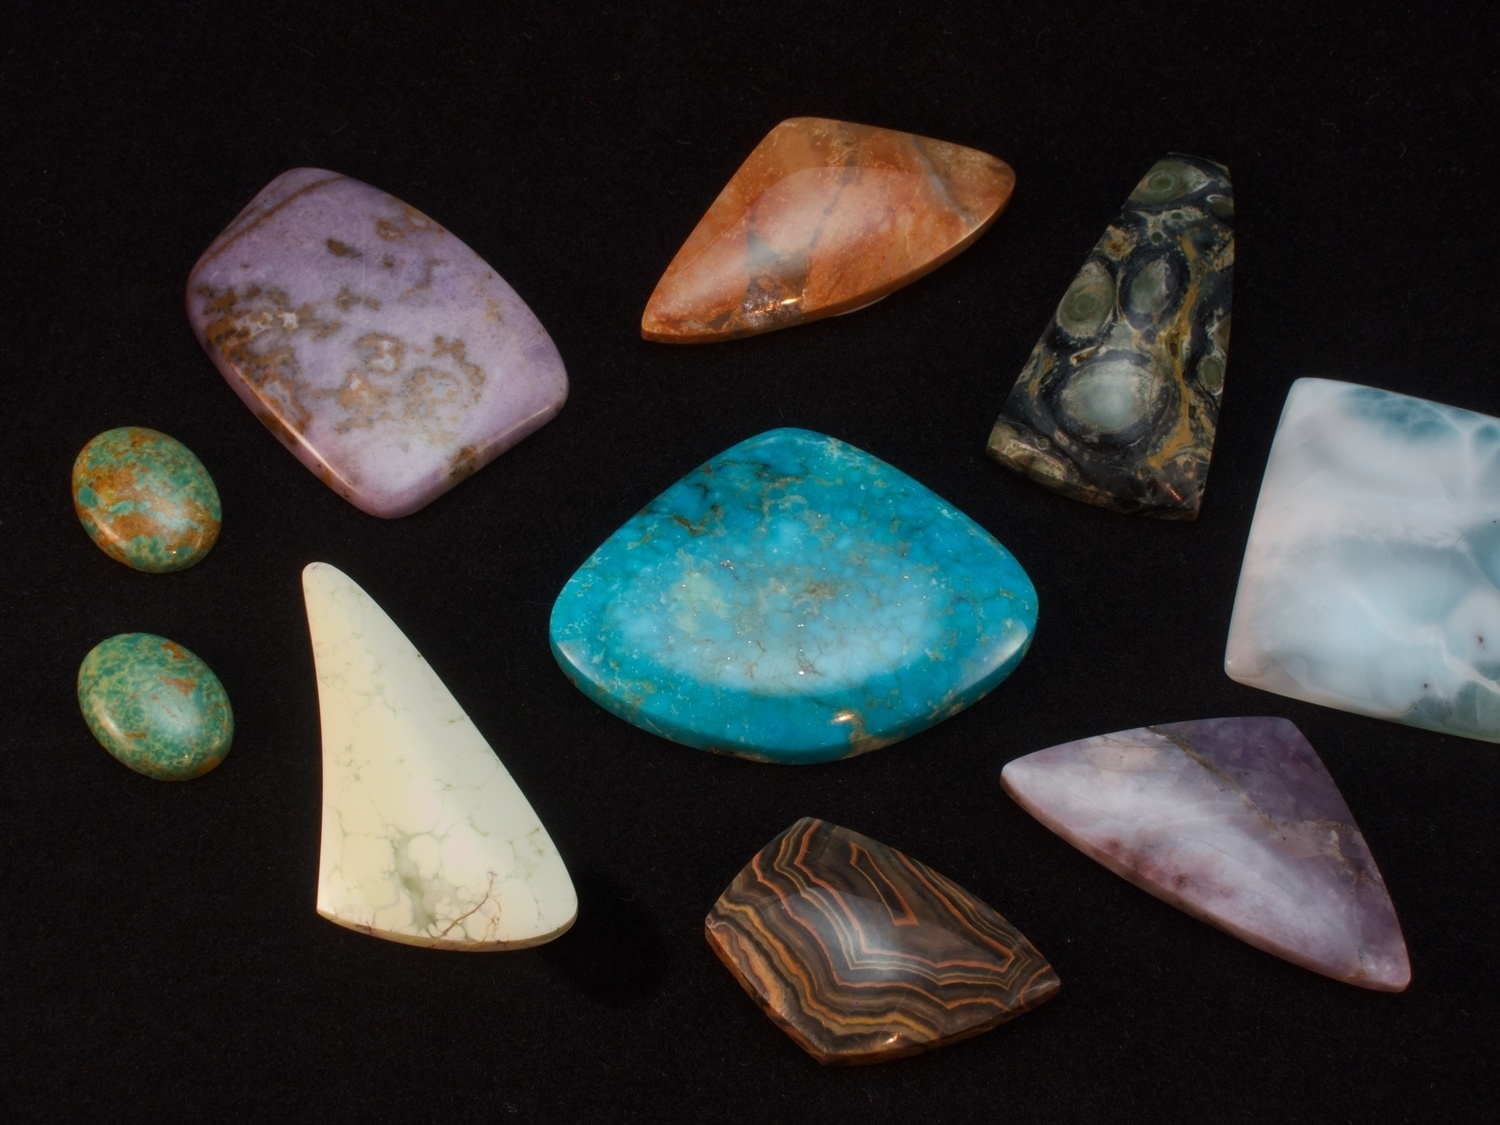 A selection of stones I recently acquired on a trip to Arizona